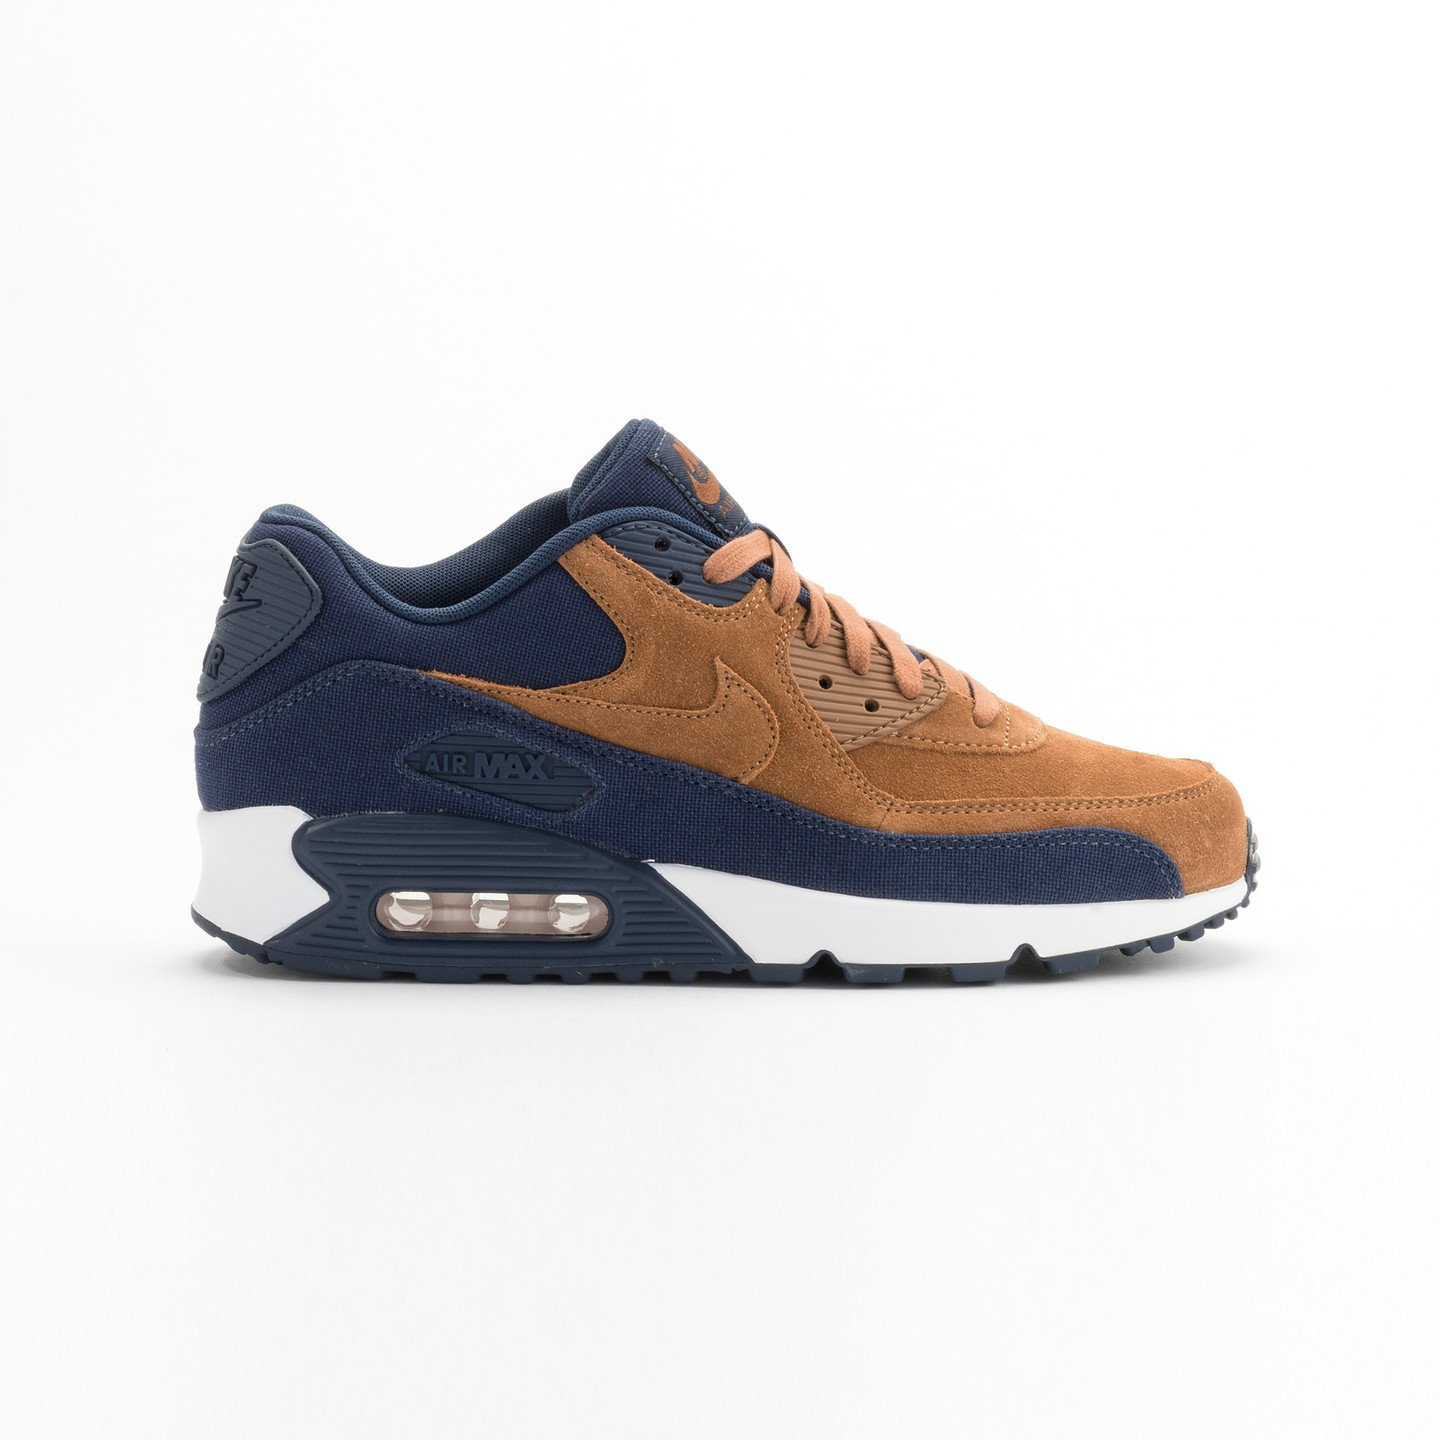 Nike Air Max 90 Premium Ale Brown / Midnight Navy 700155-201-44.5